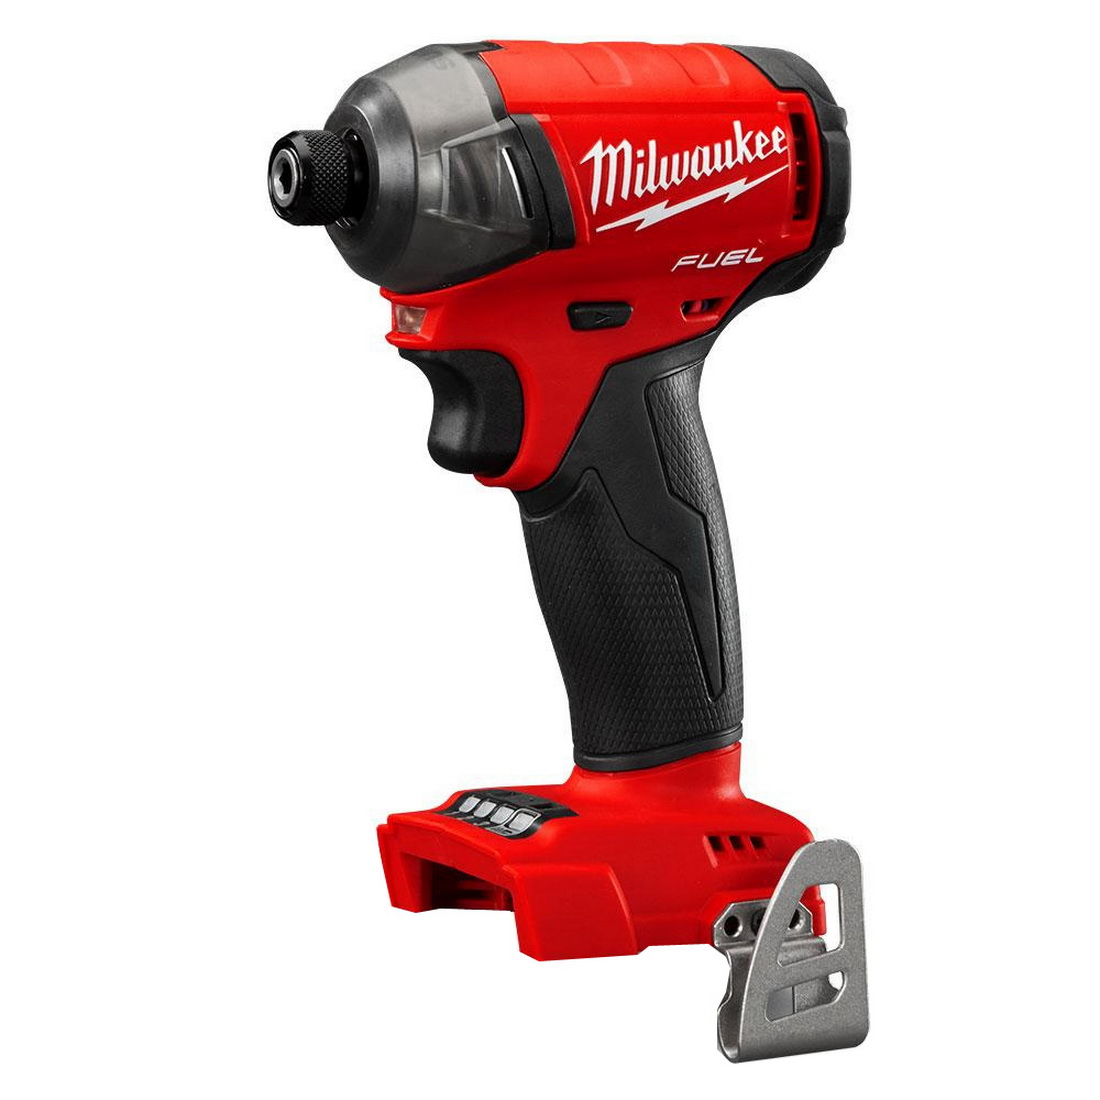 M18 FUEL Cordless Brushless Impact Driver 1/4 inch Hex